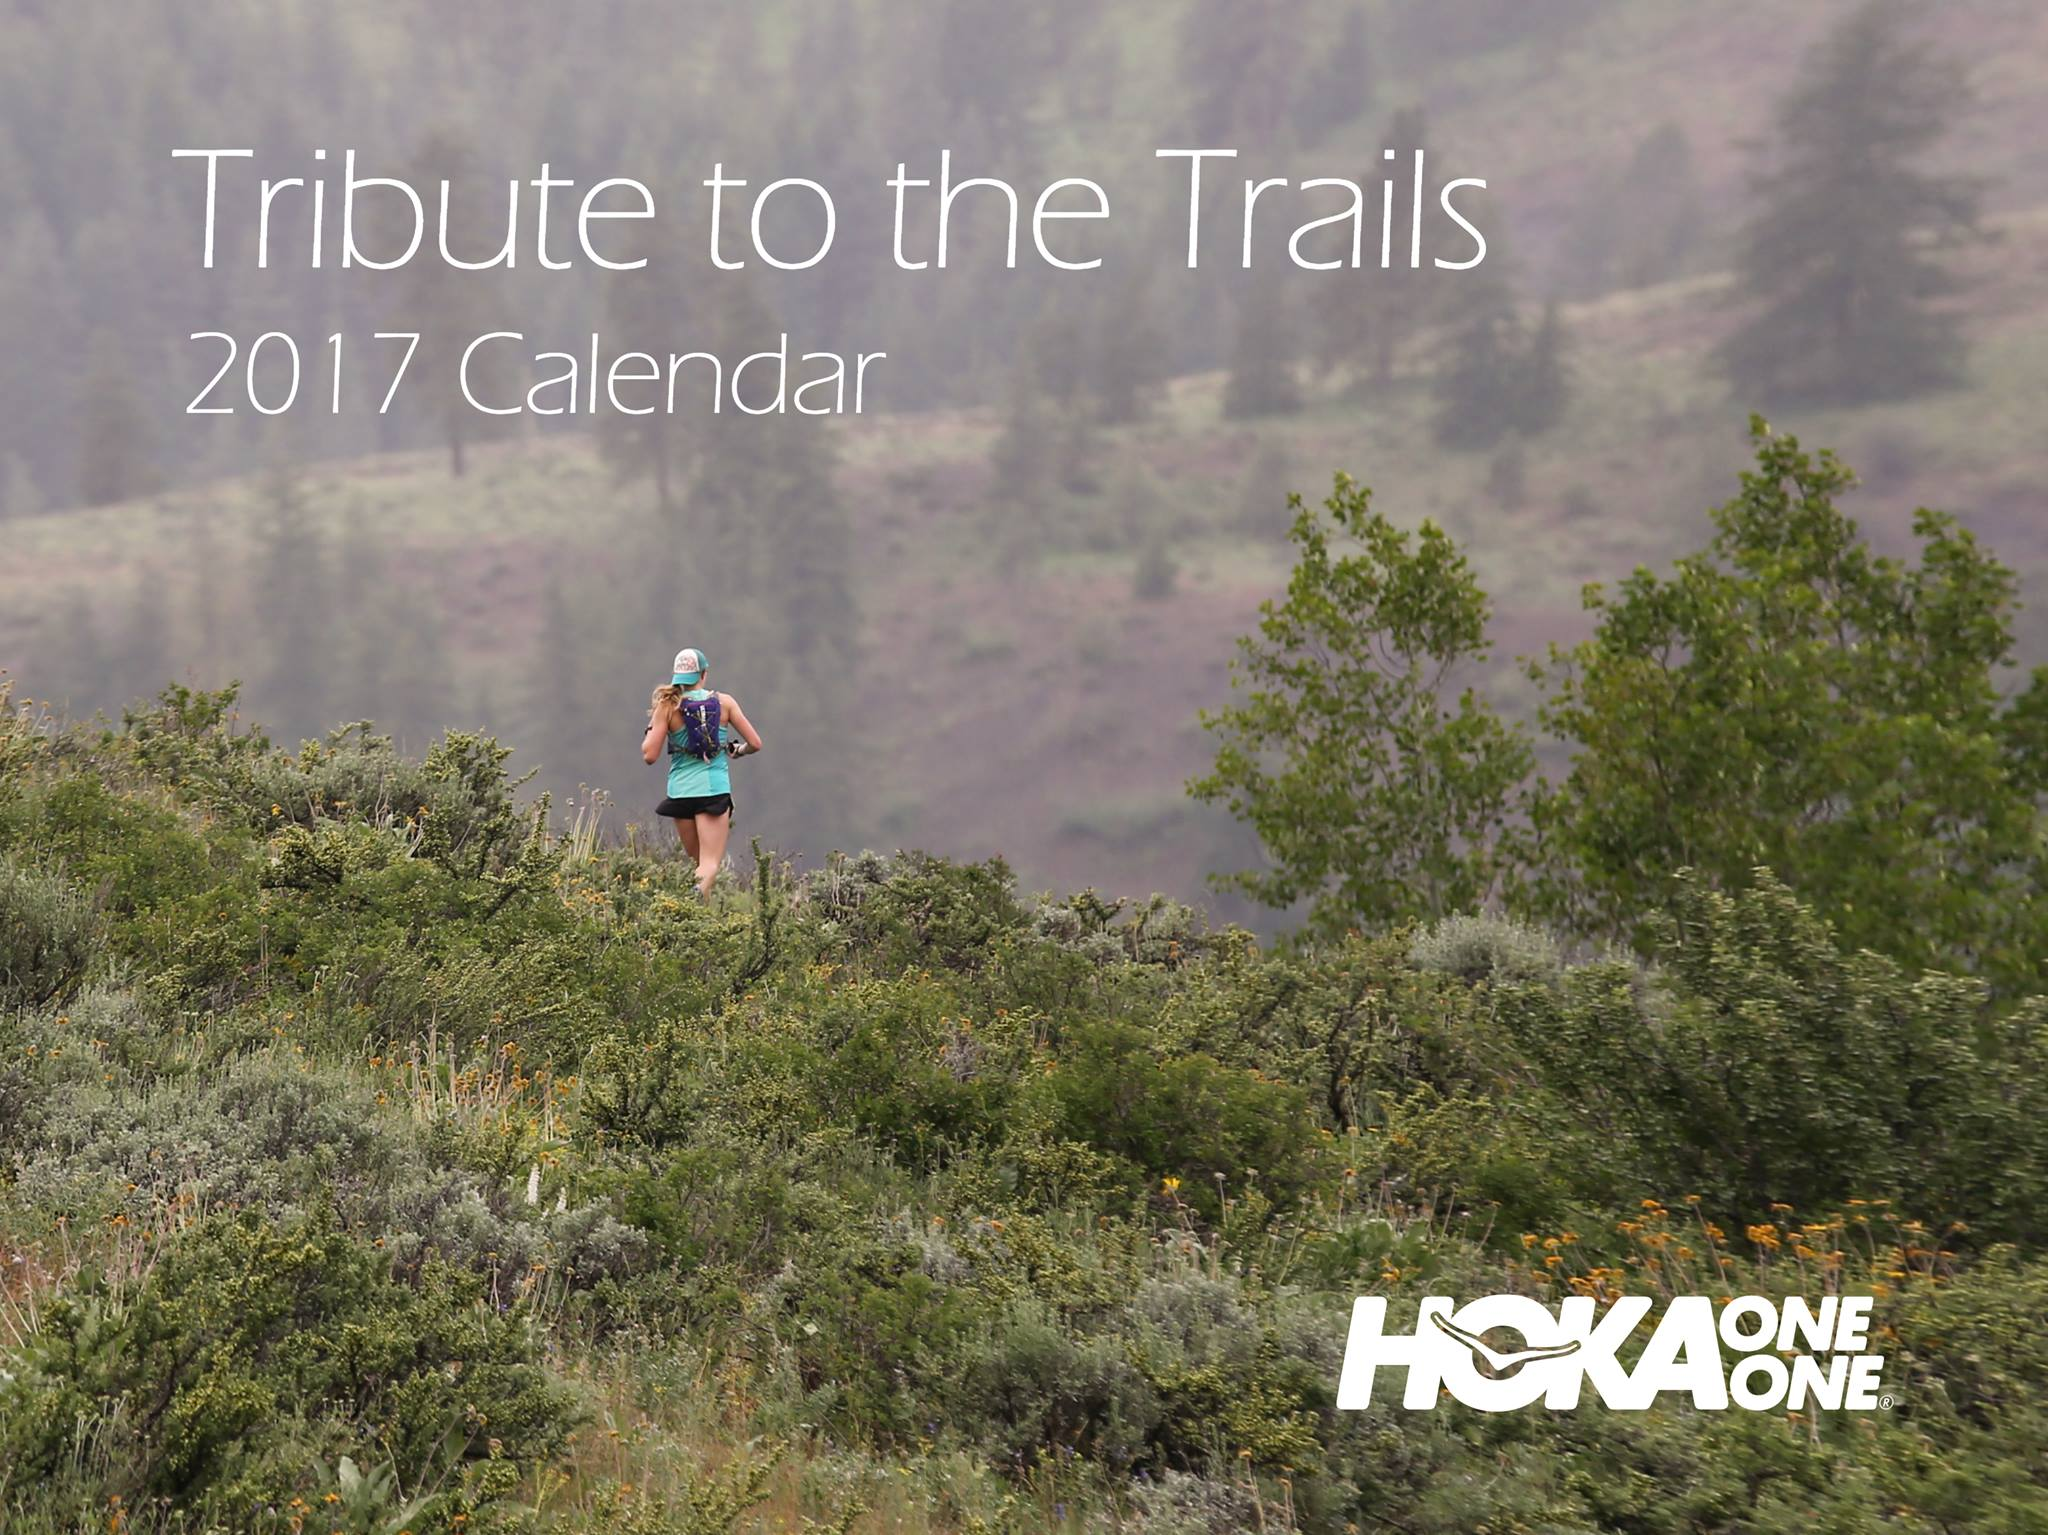 The Tribute to the Trails 2016 Calendar